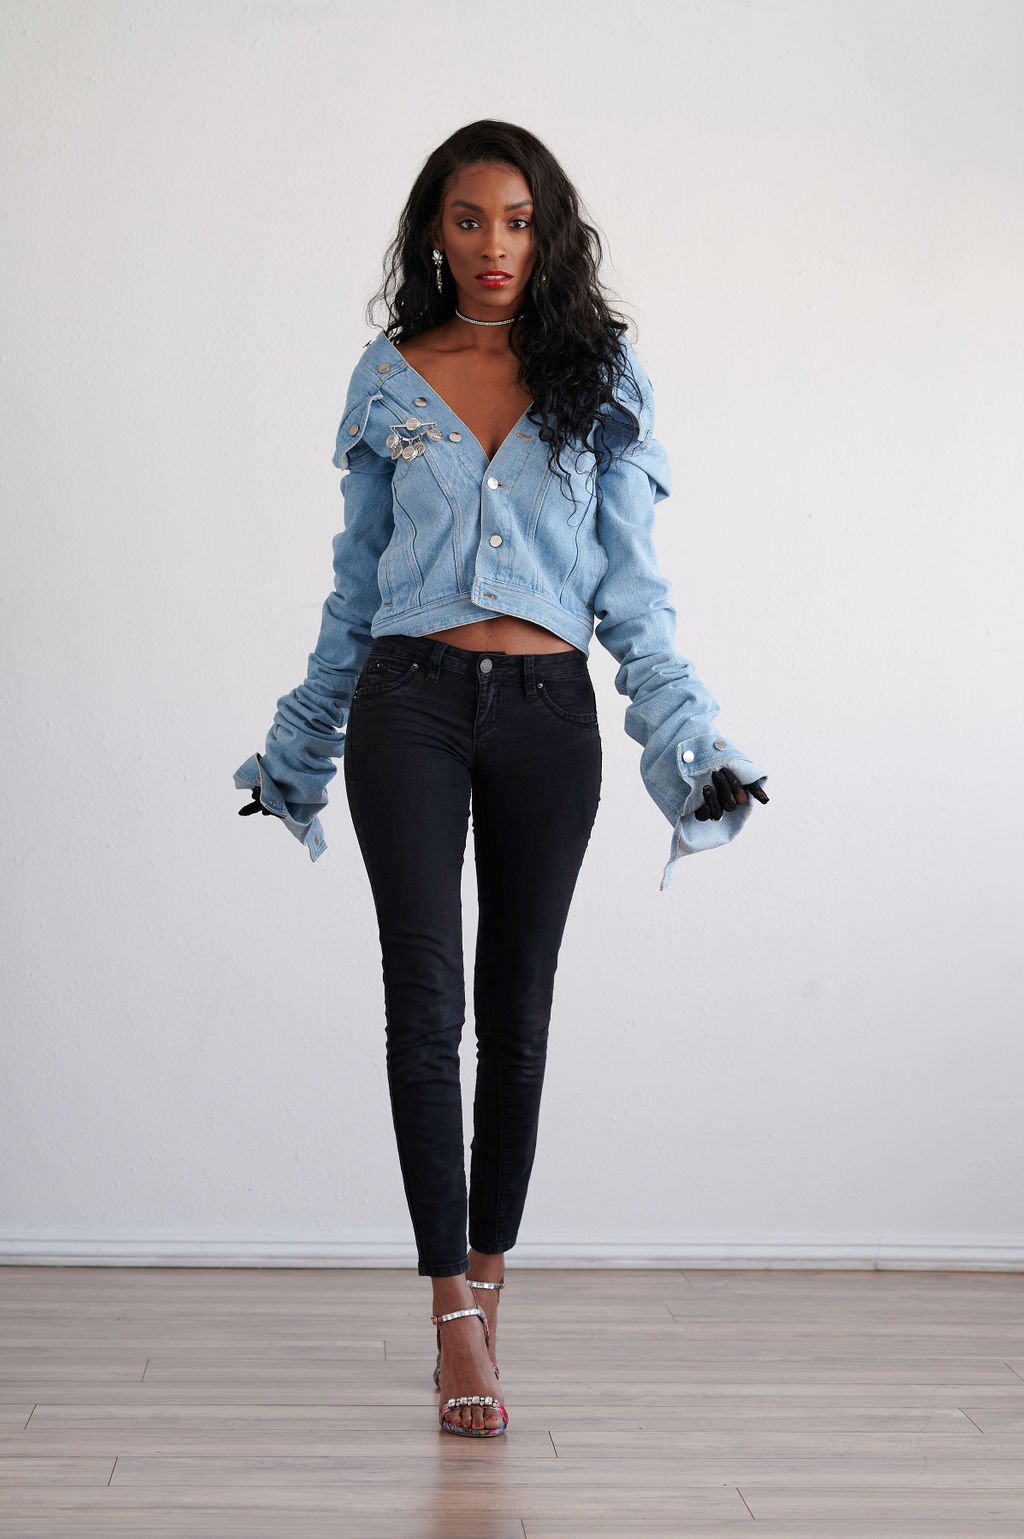 Annjulia Smalls In Y Project-styled by melissa-lcm-sheldon botler photography-denim jacket-elongated sleeves-high fashion